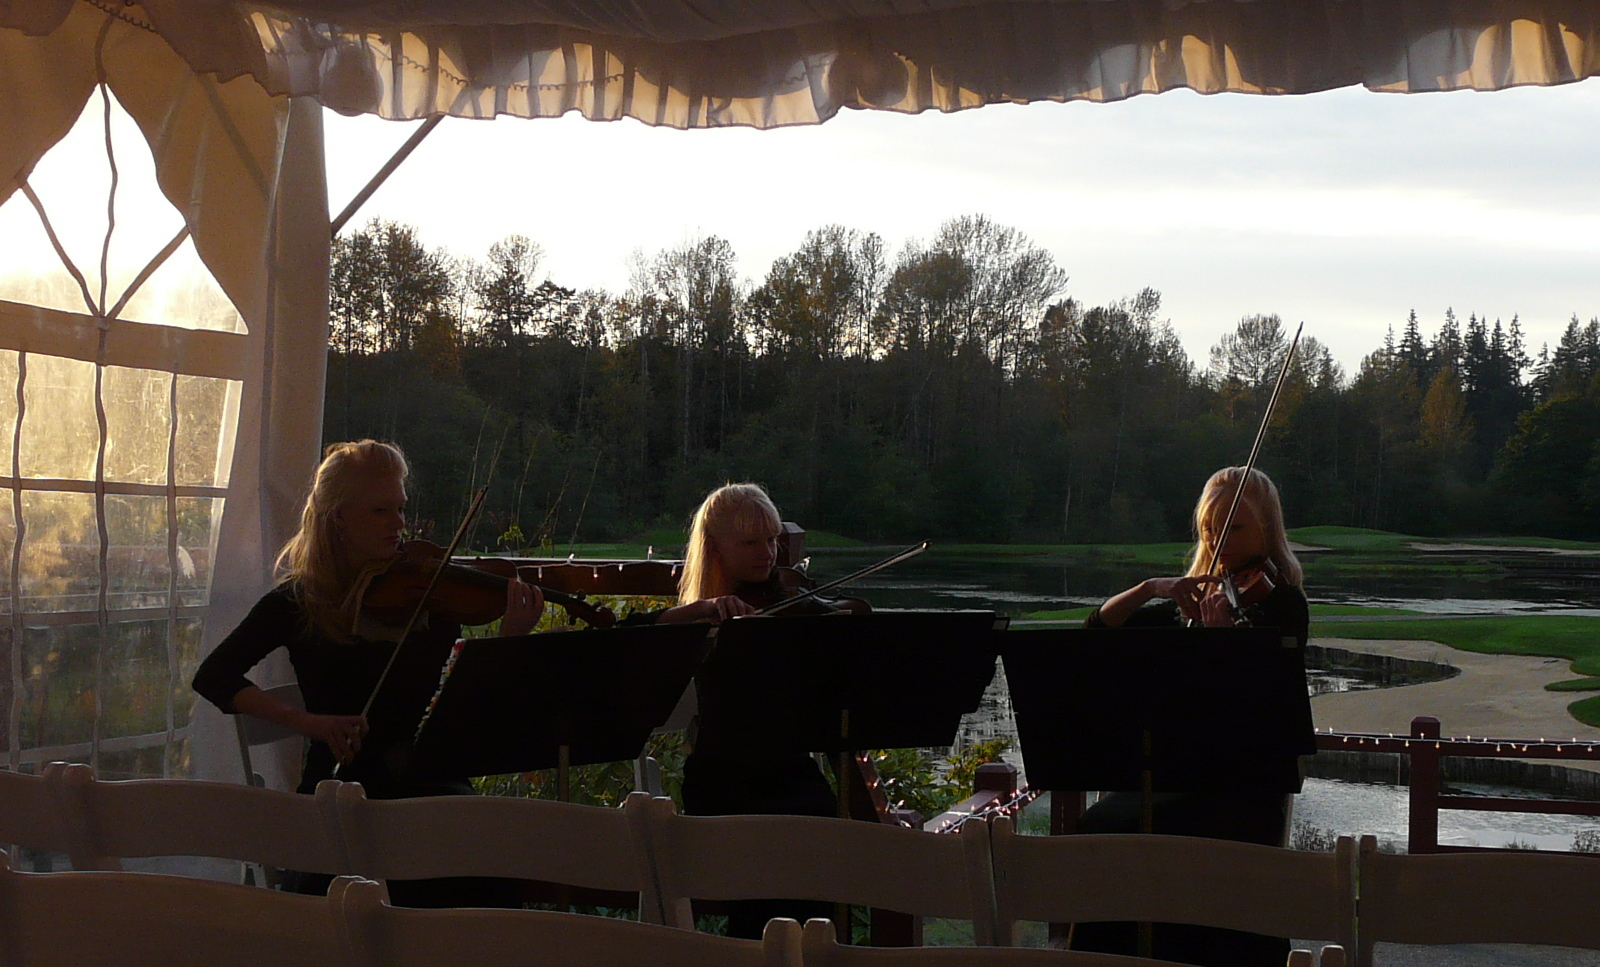 Ceremony, Reception, Flowers & Decor, Wedding, Musicians, Music, Violin, The, Quartet, Sisters, Lodge, Three, Creek, Trio, String, wa, Bear, Gothard, September, Woodinville, Violins